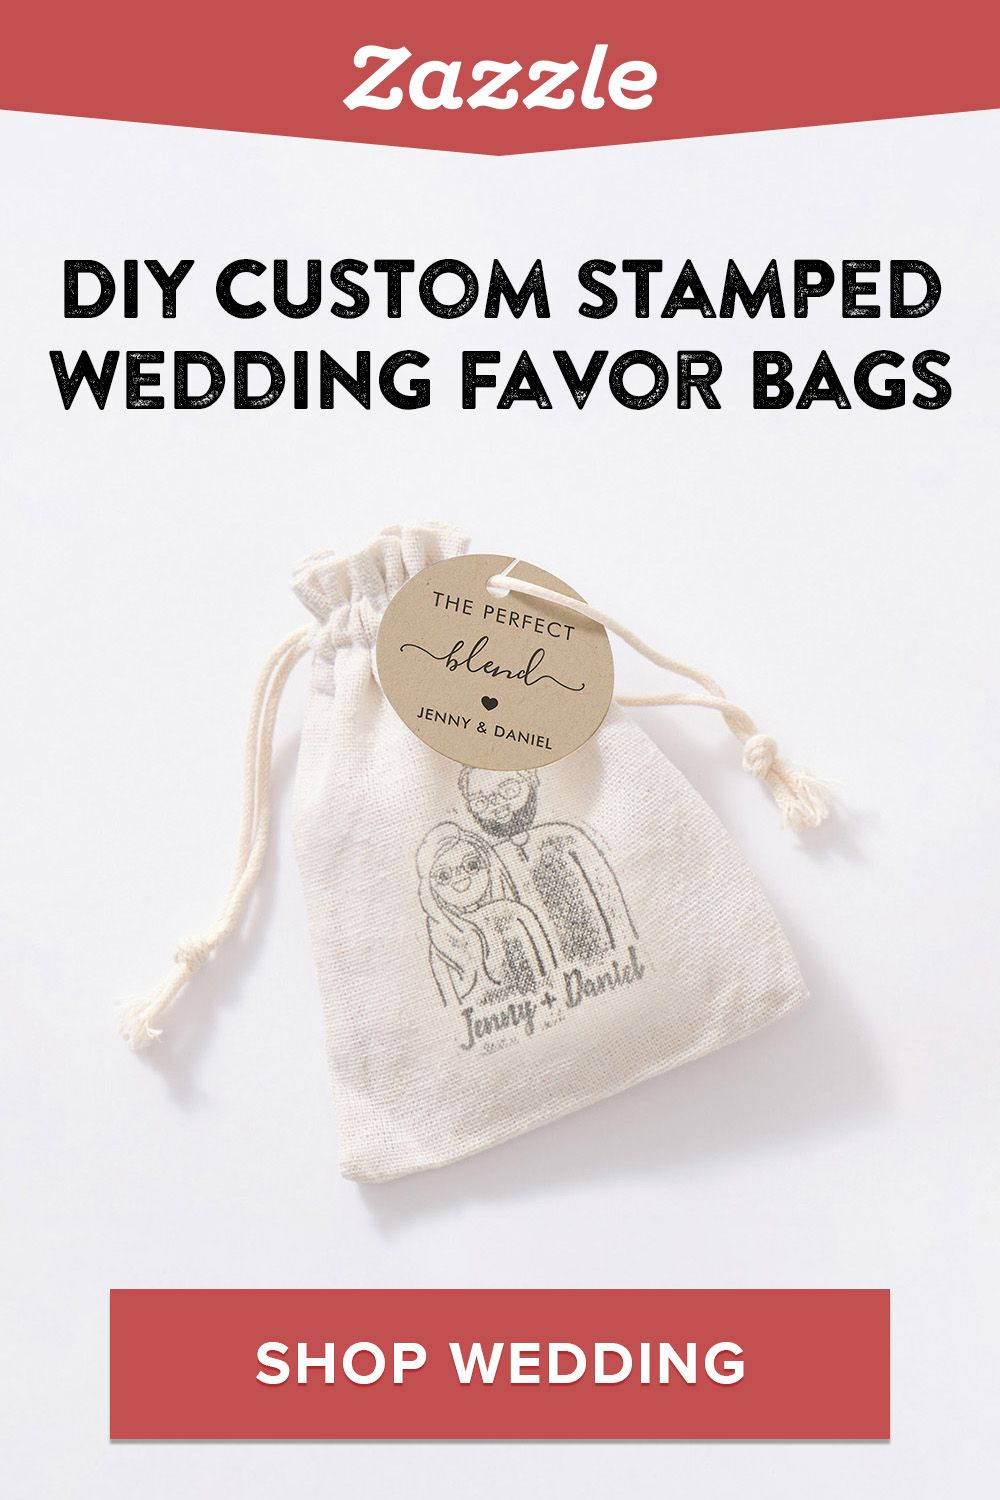 A beautiful yet easy DIY wedding favor: Create a custom stamp on Zazzle and use on favor bags to fill with coffee beans, candy, plant seeds and more. Shop Zazzle for all things wedding including invitations, menus, decor and more.